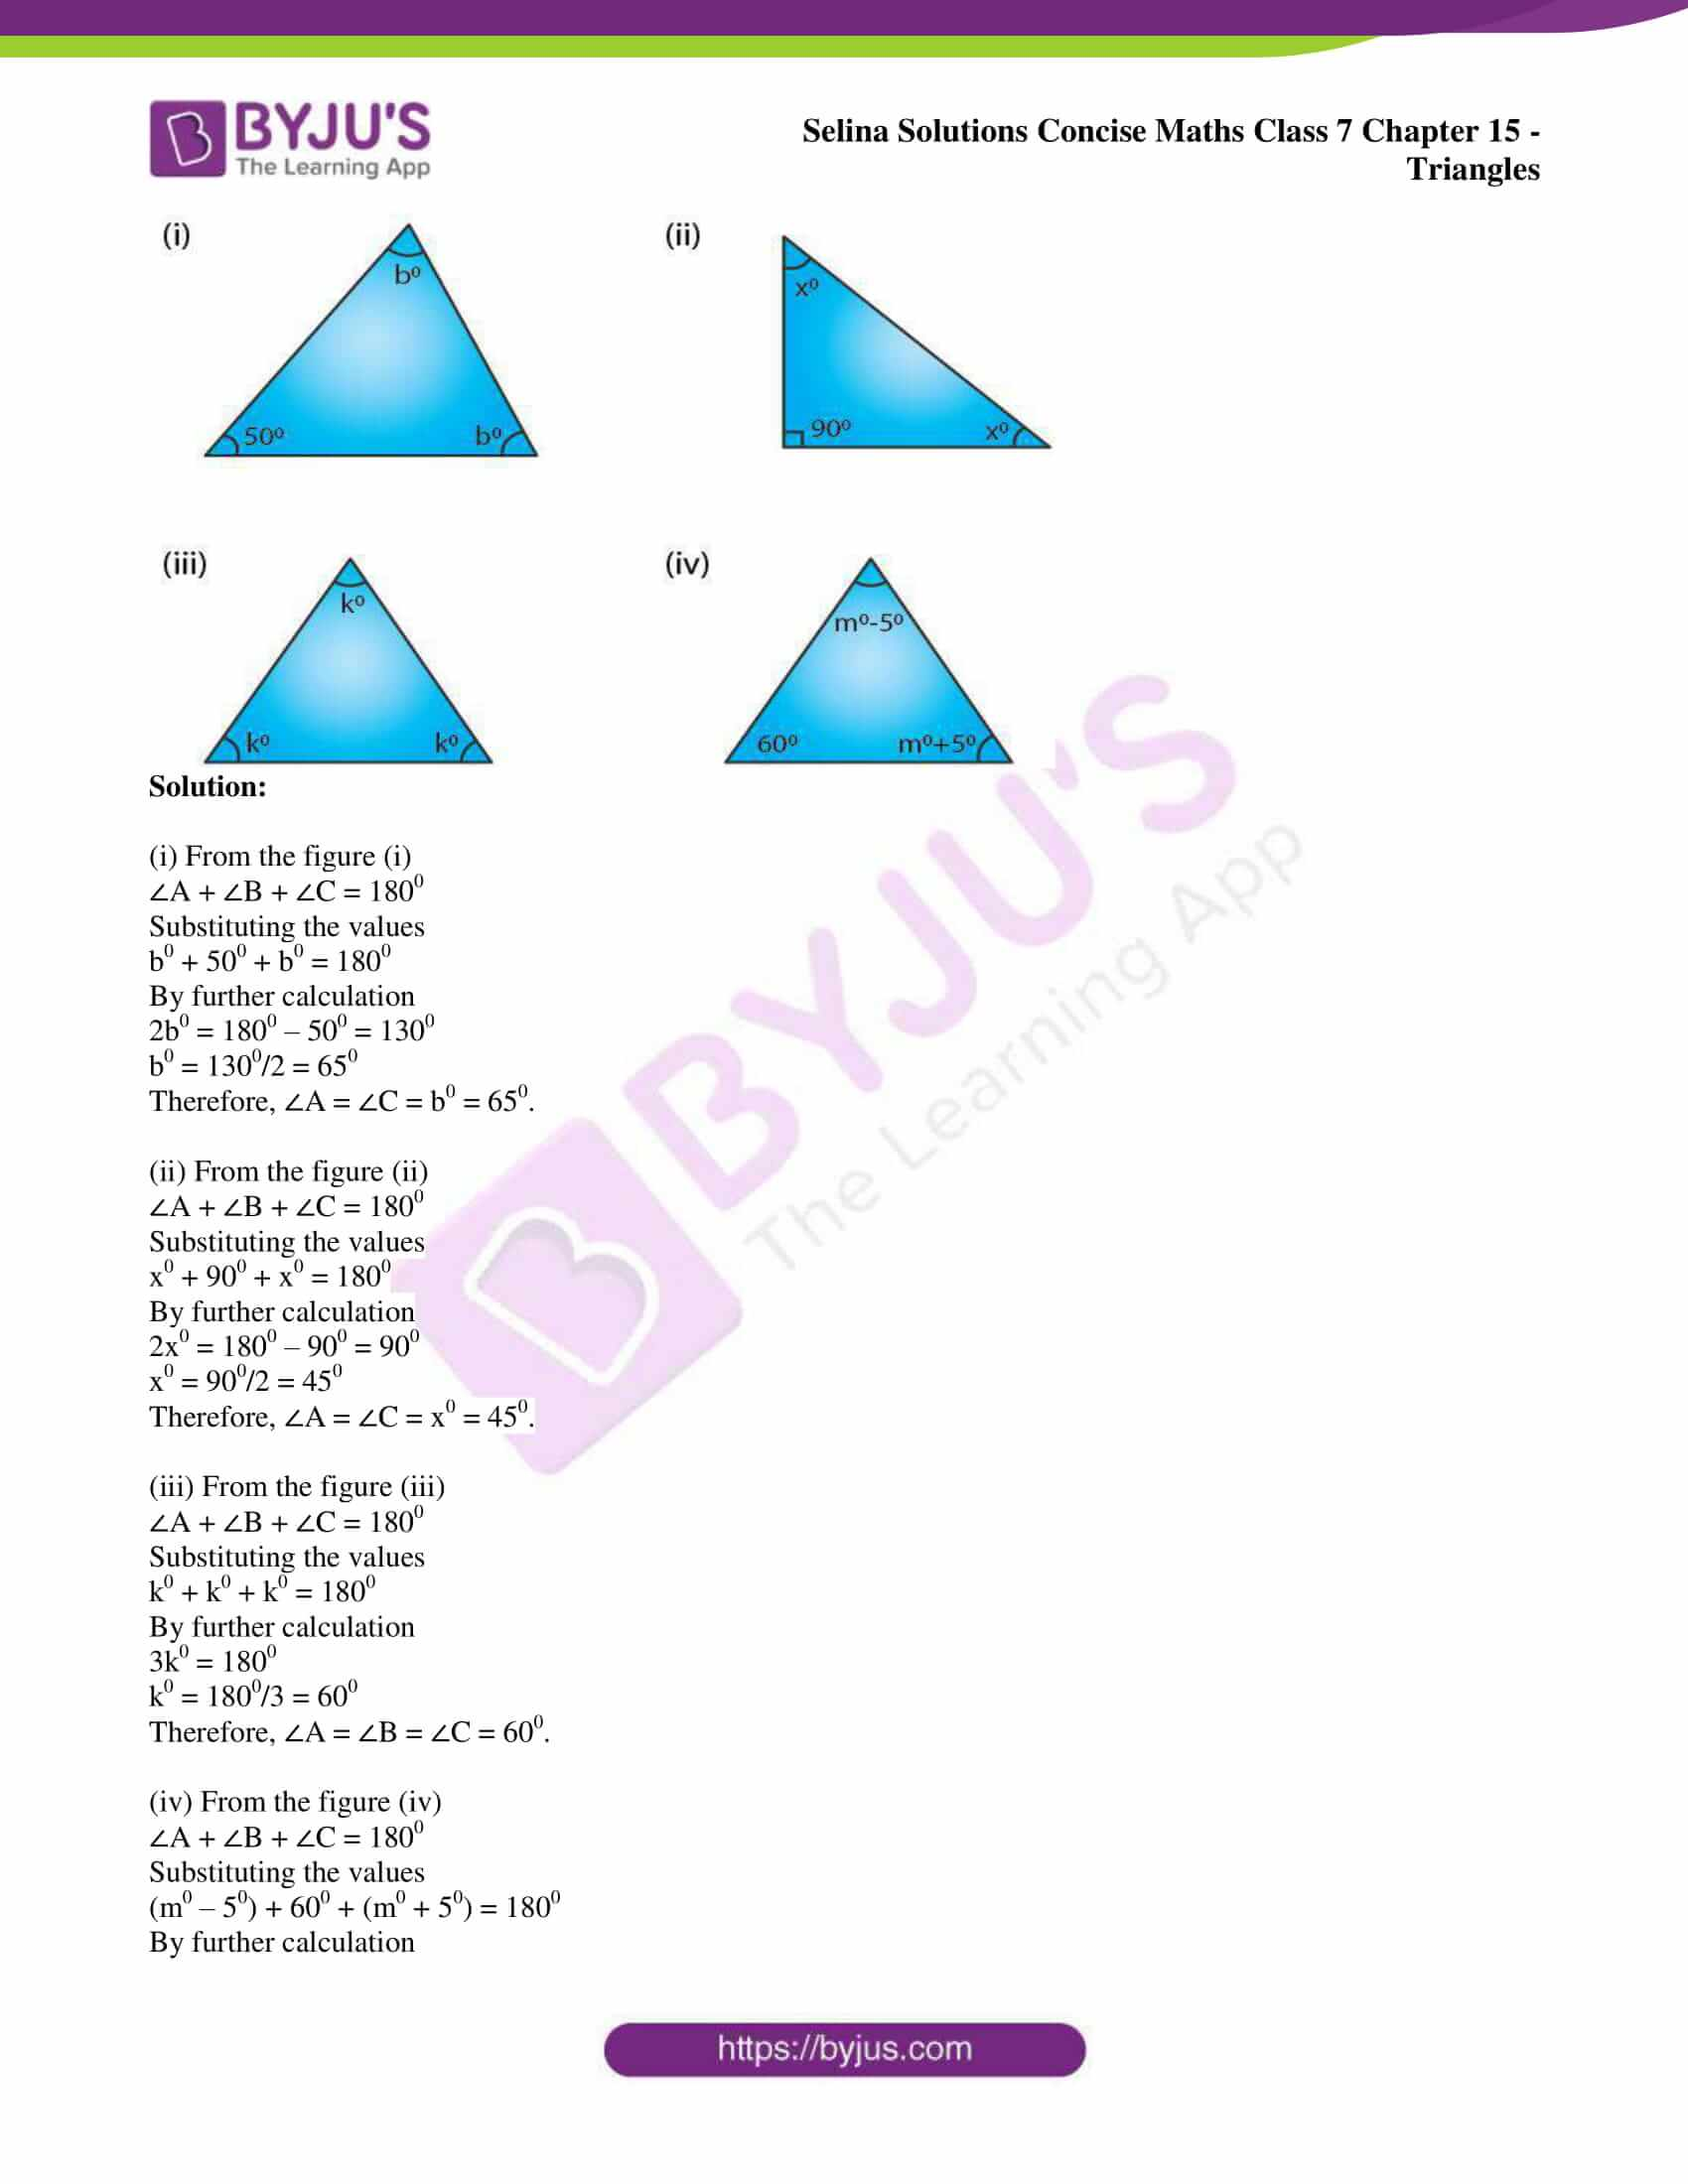 selina sol concise maths class 7 chapter 15 ex a 4